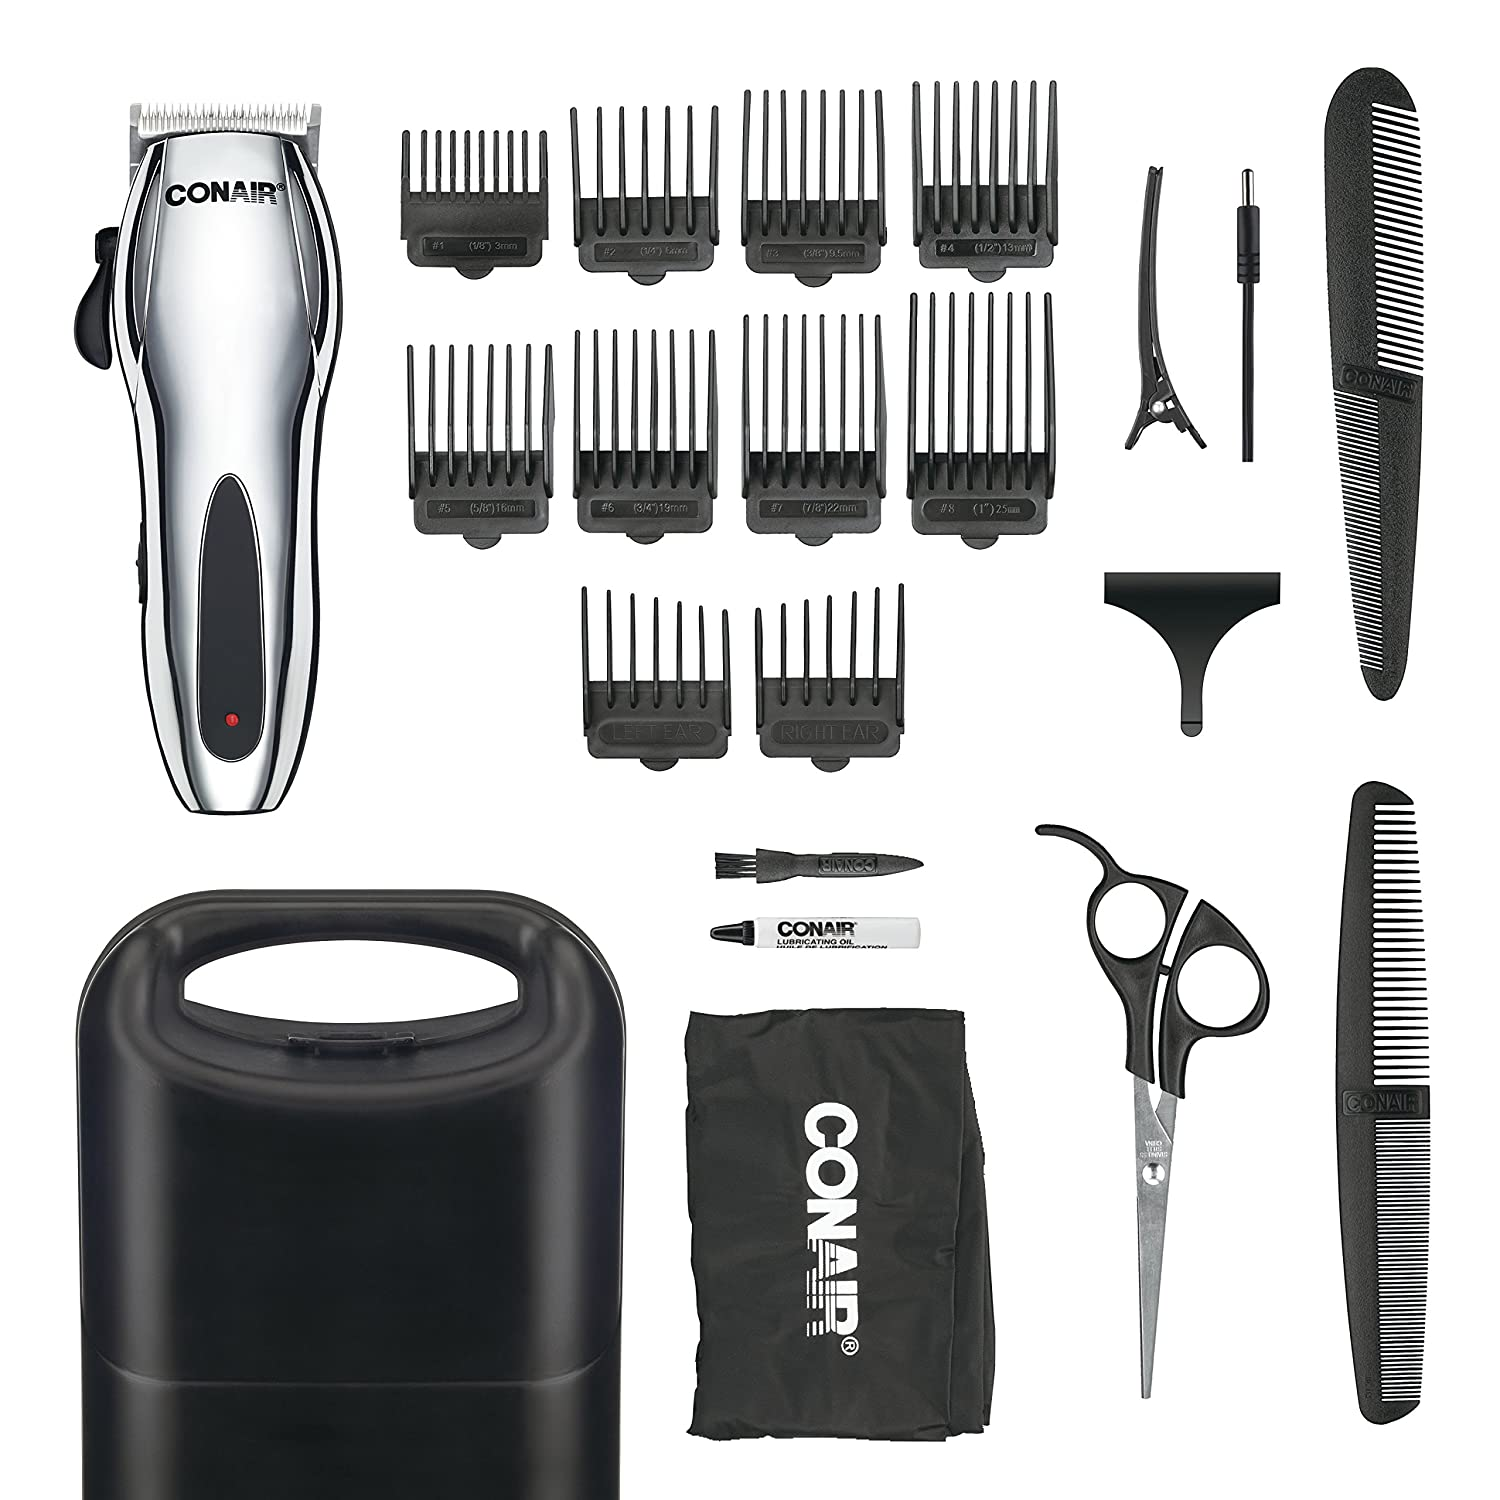 Conair Corded/Cordless Rechargeable 22-piece Home Haircut Kit